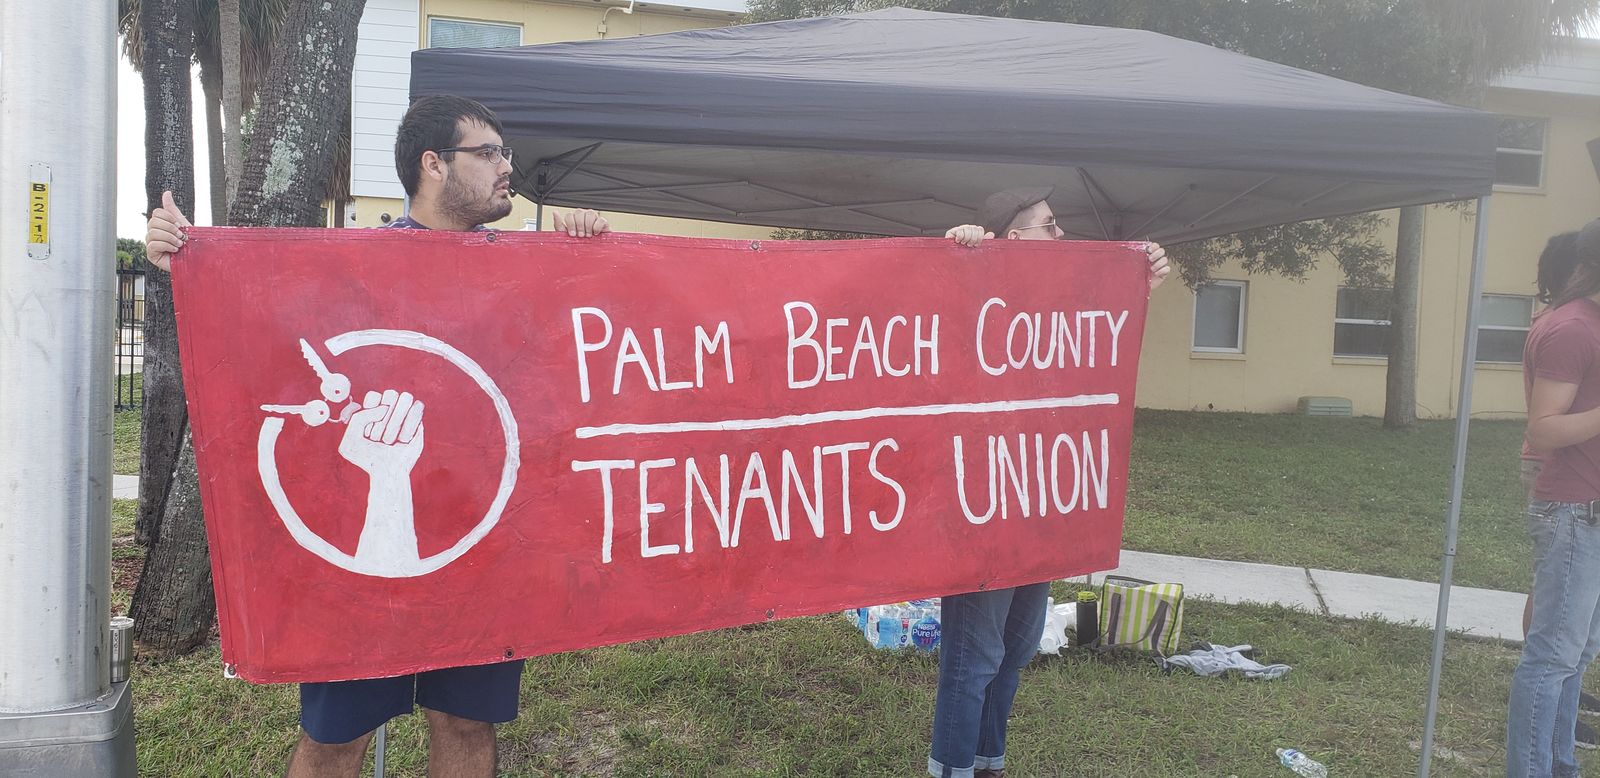 <p>Members of the Palm Beach County Tenants Union barricaded themselves in an apartment at Stonybrook Friday afternoon ahead of evictions. (Palm Beach County Tenants Union)</p>